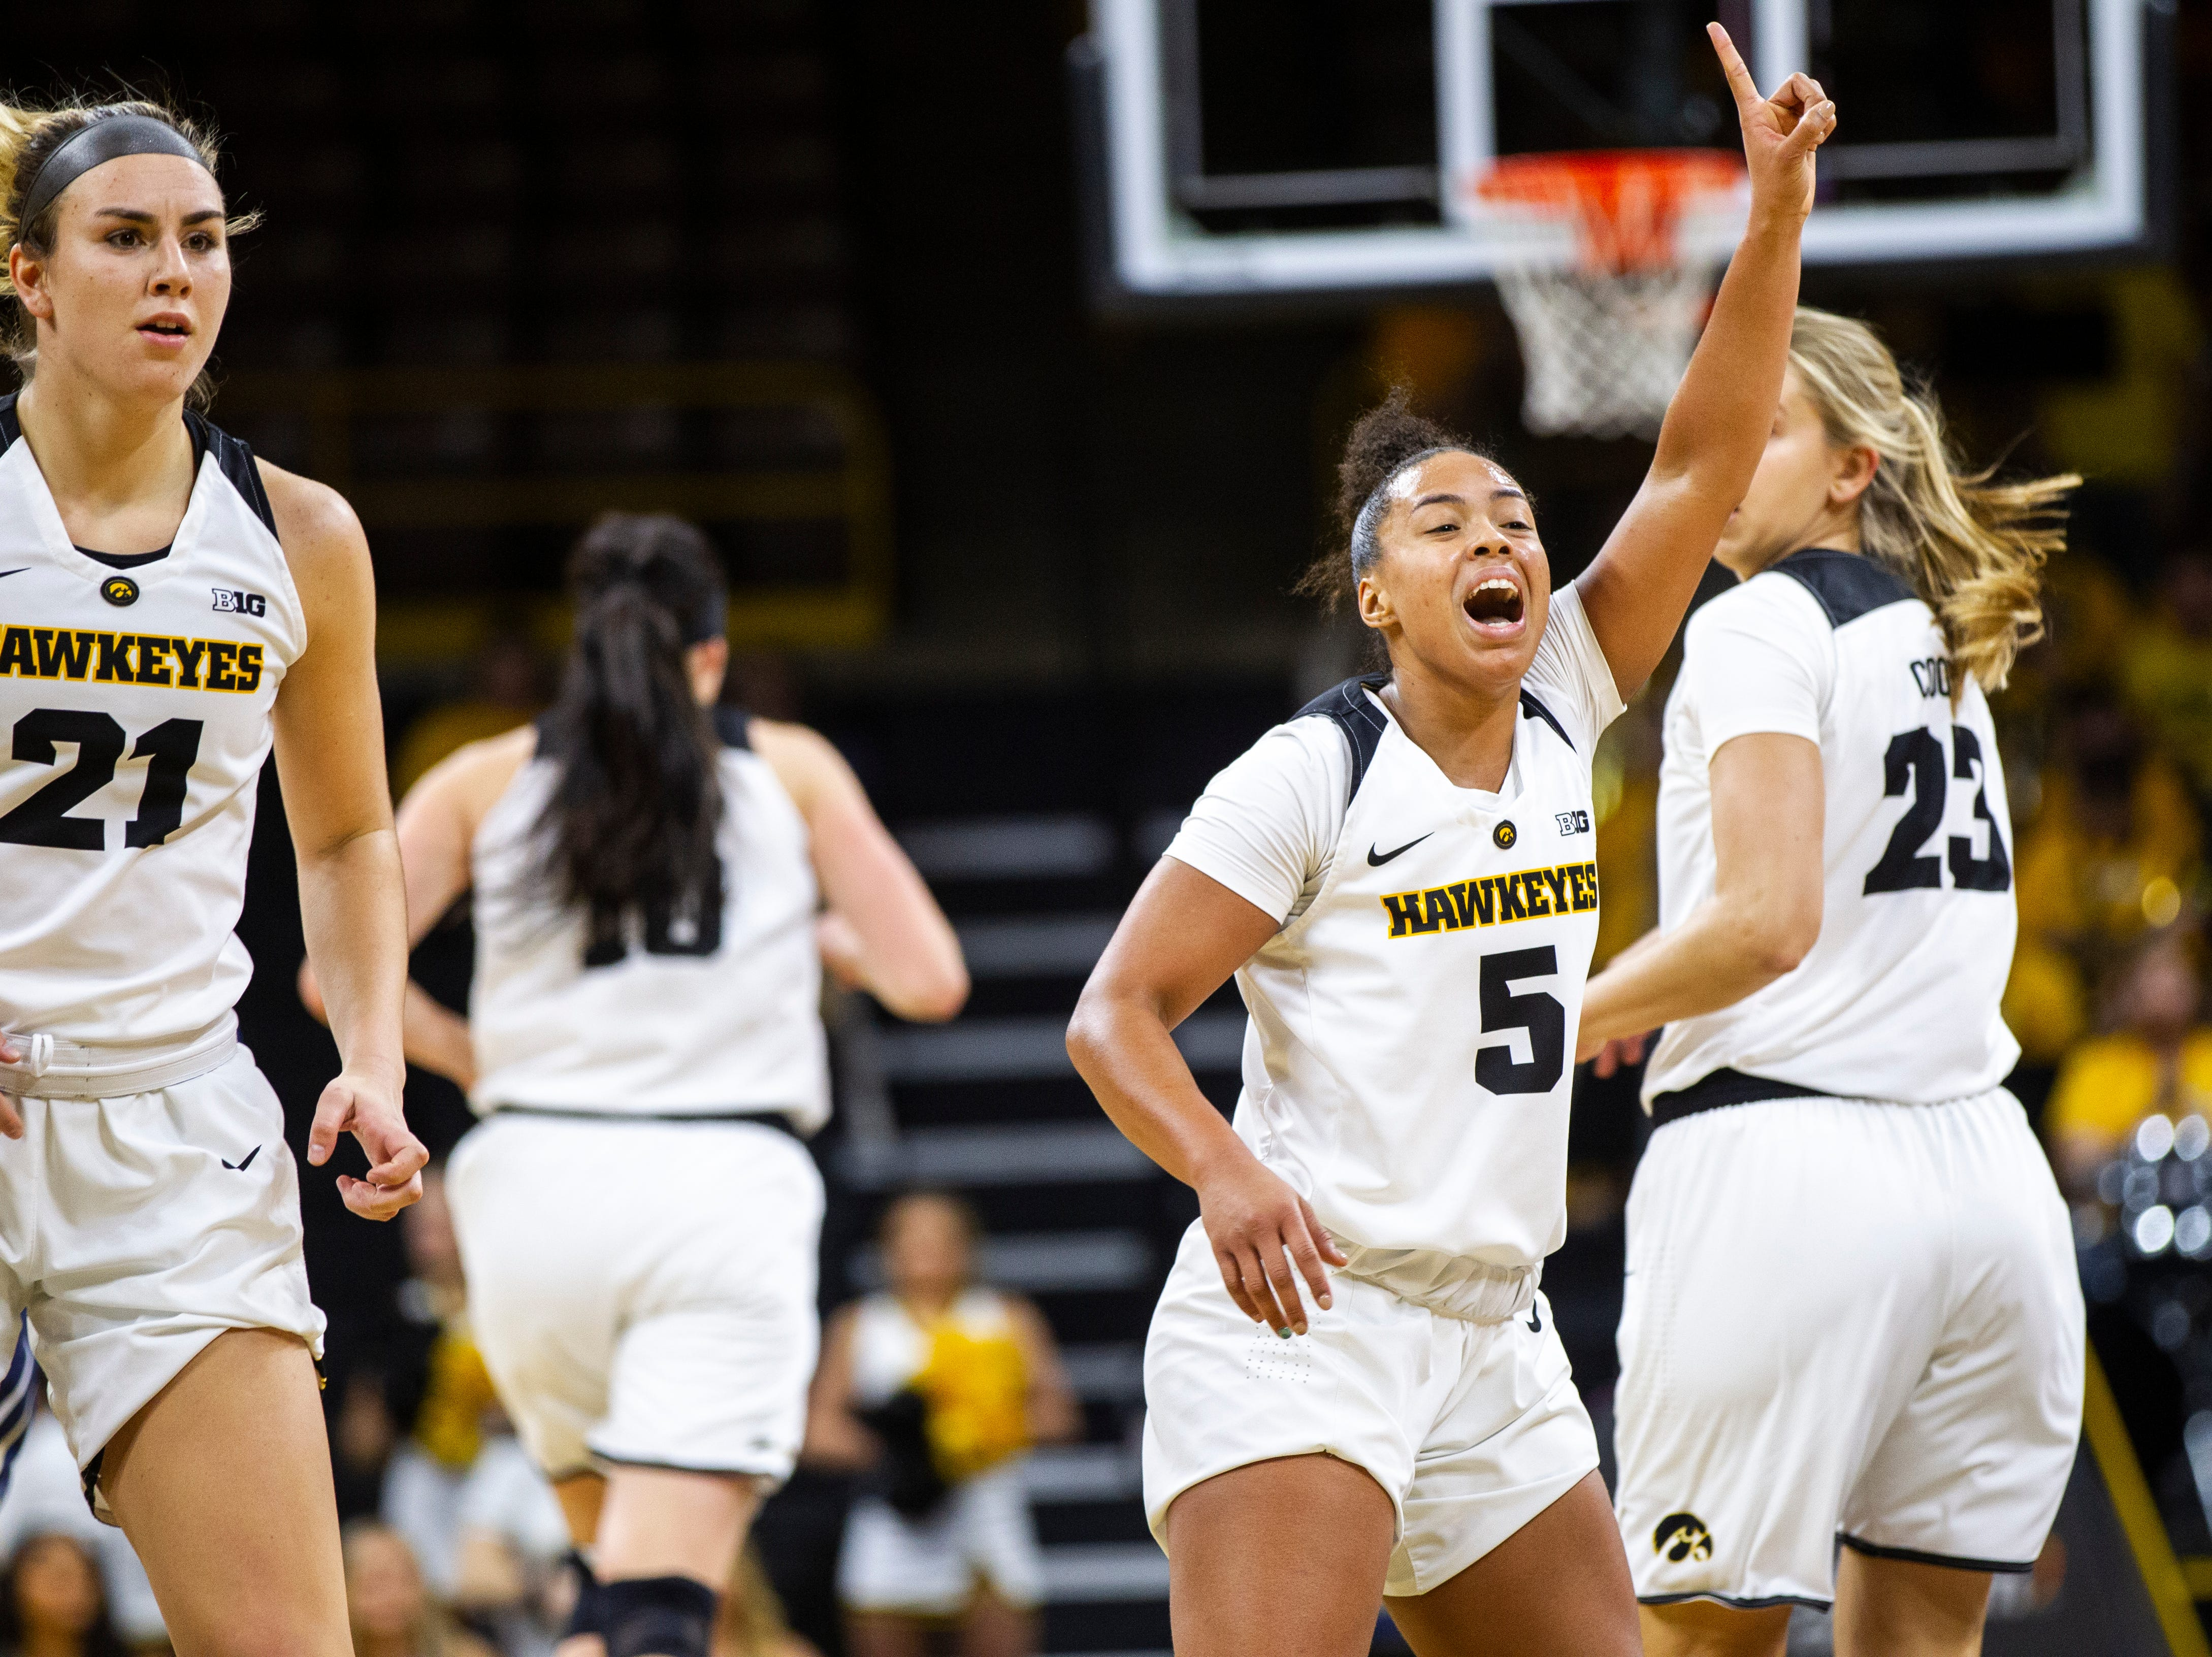 Iowa women's basketball: One last tune-up before Hawkeyes' tough nonconference stretch begins